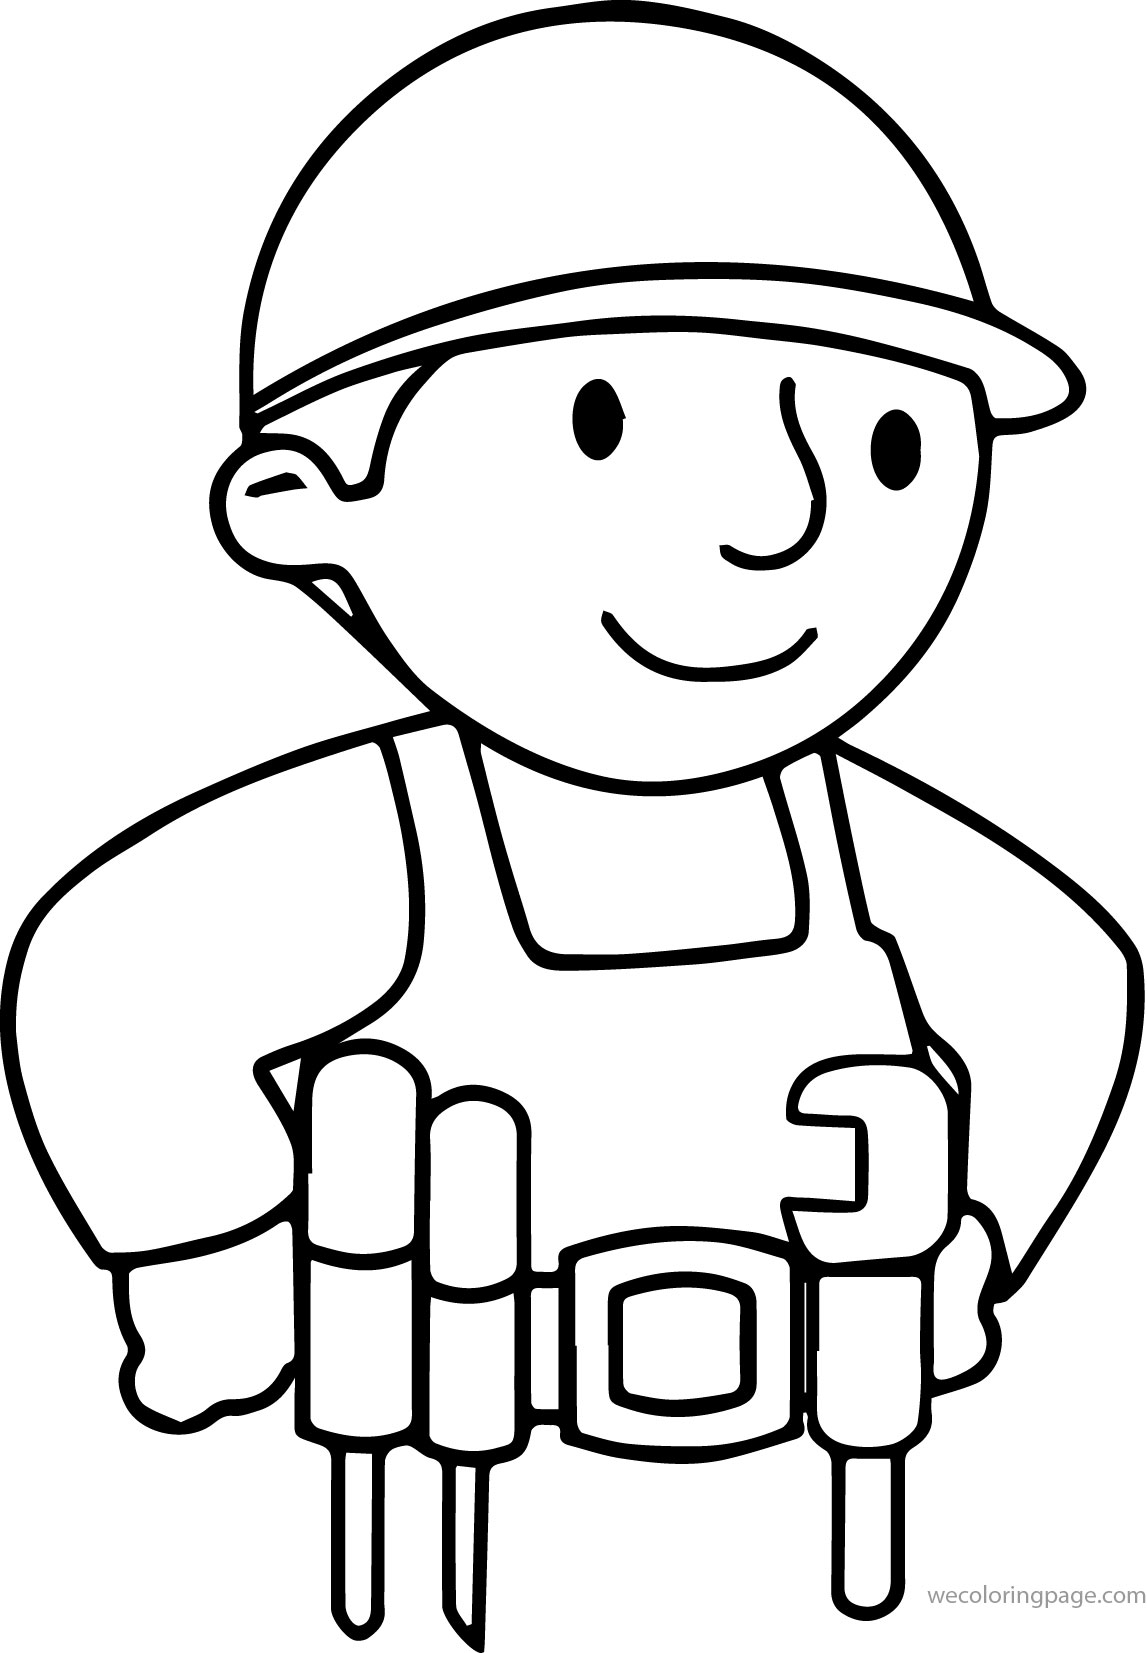 Basic Bob The Builder Coloring Page